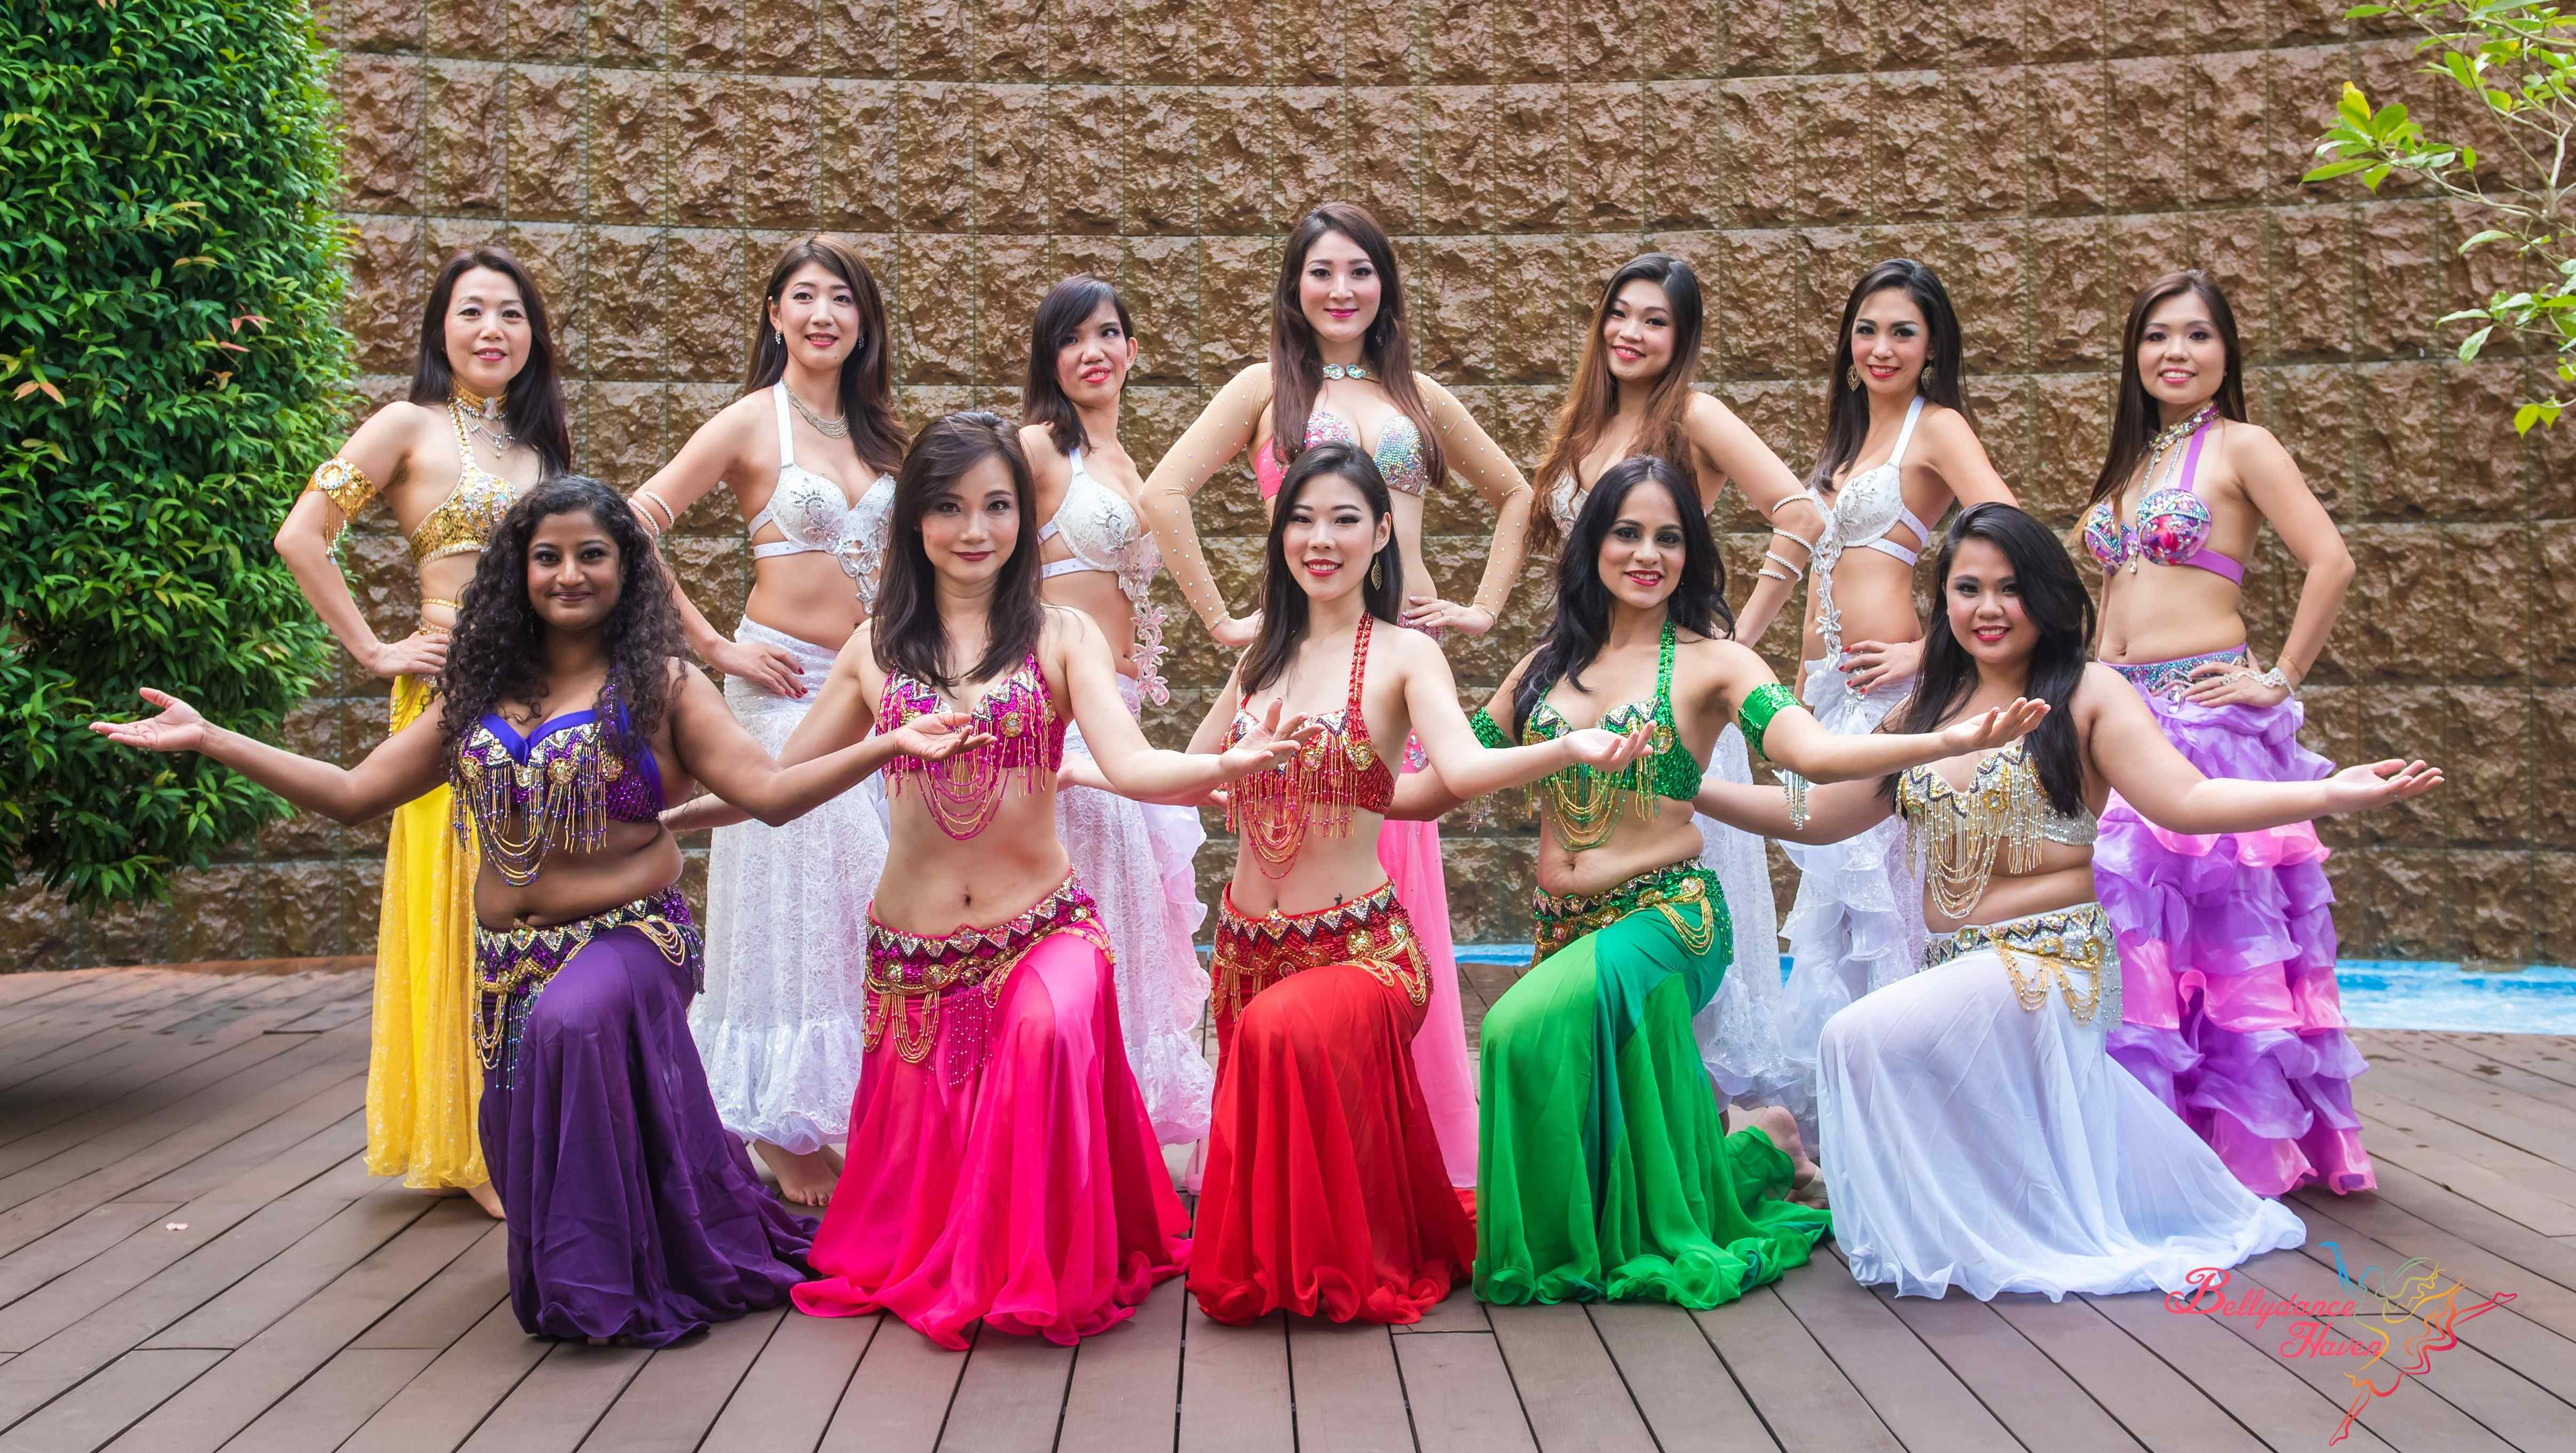 belly dancers in group